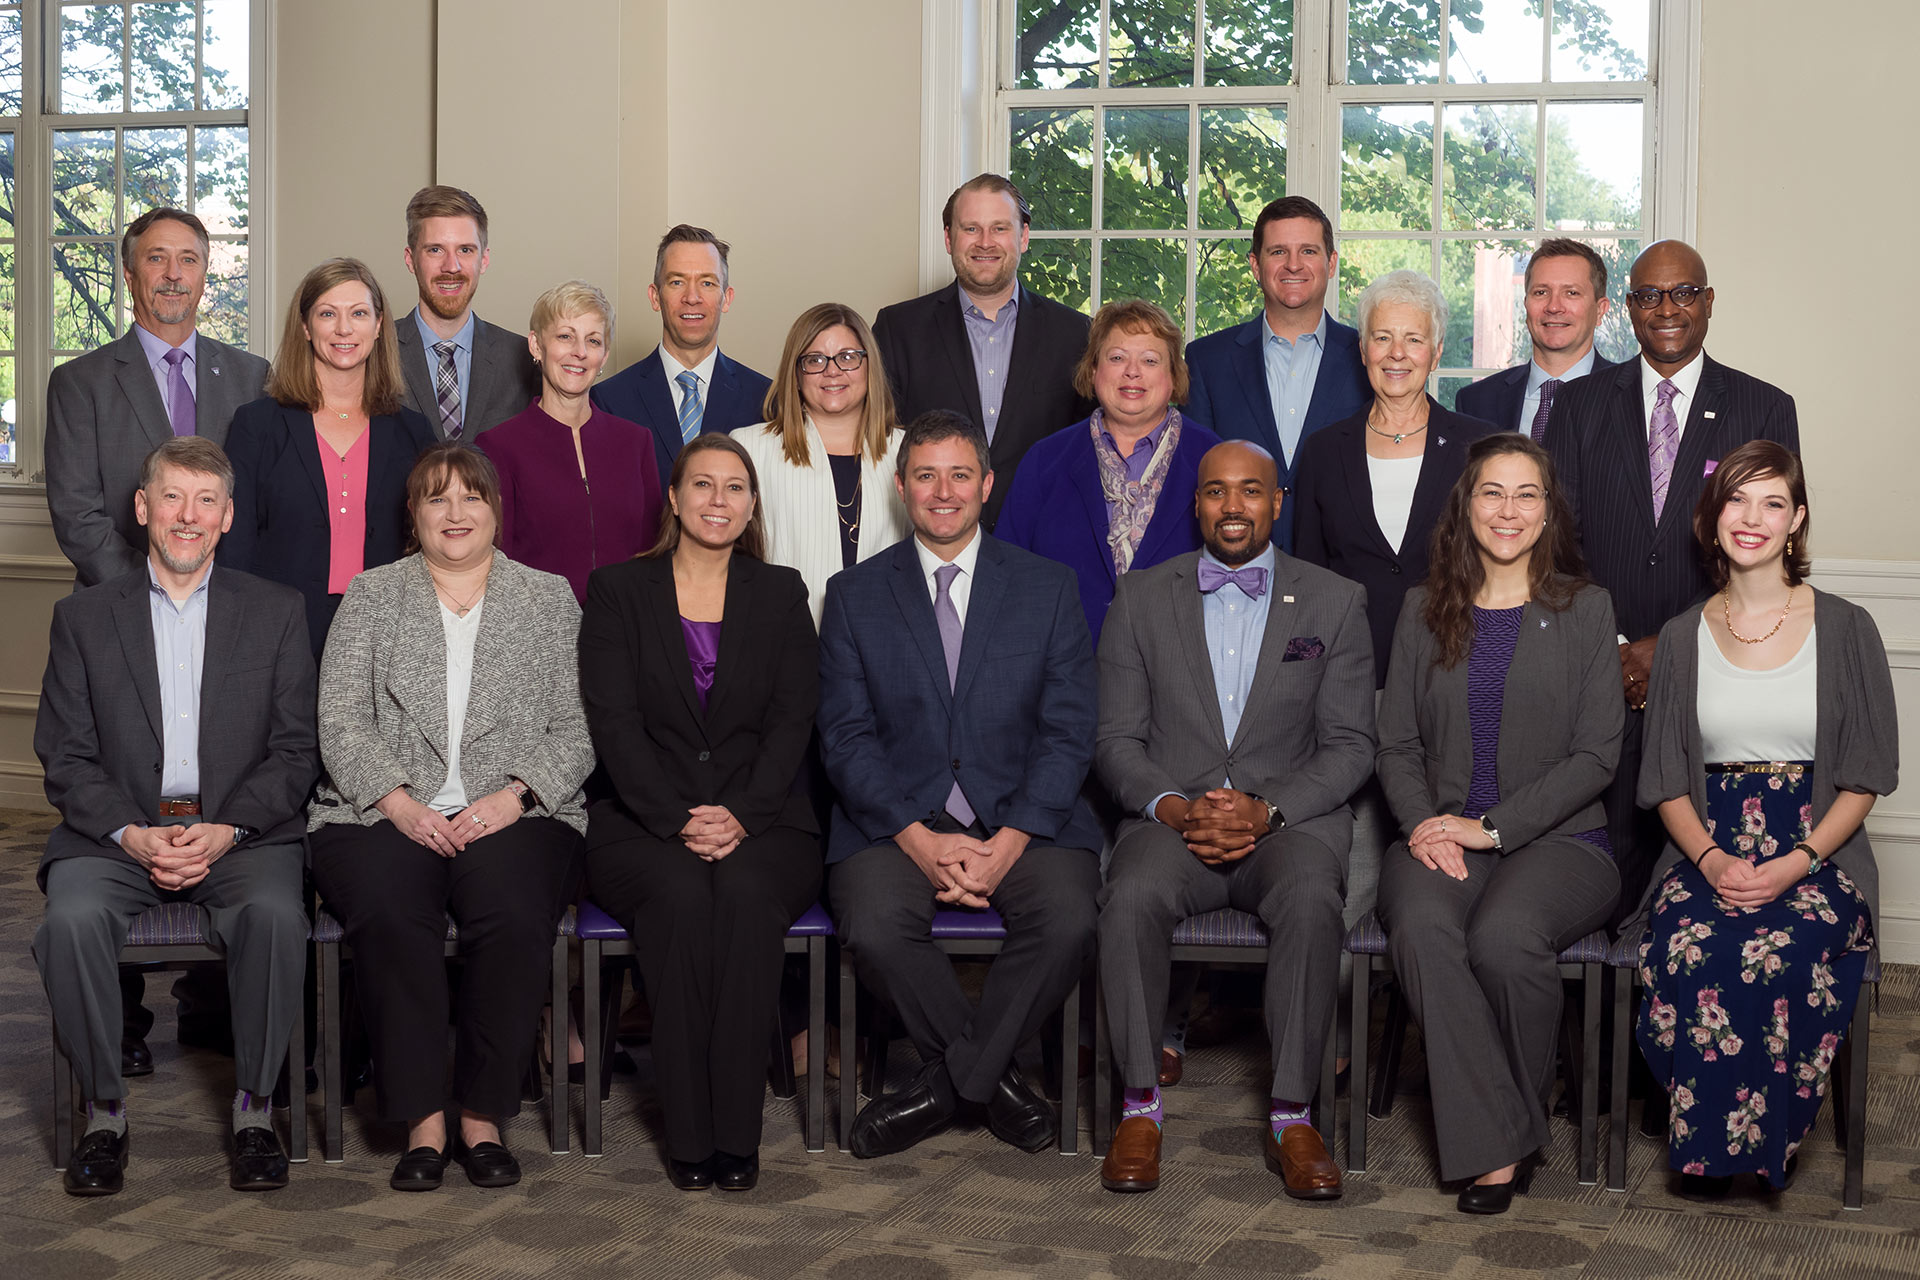 Foundation Board group photo